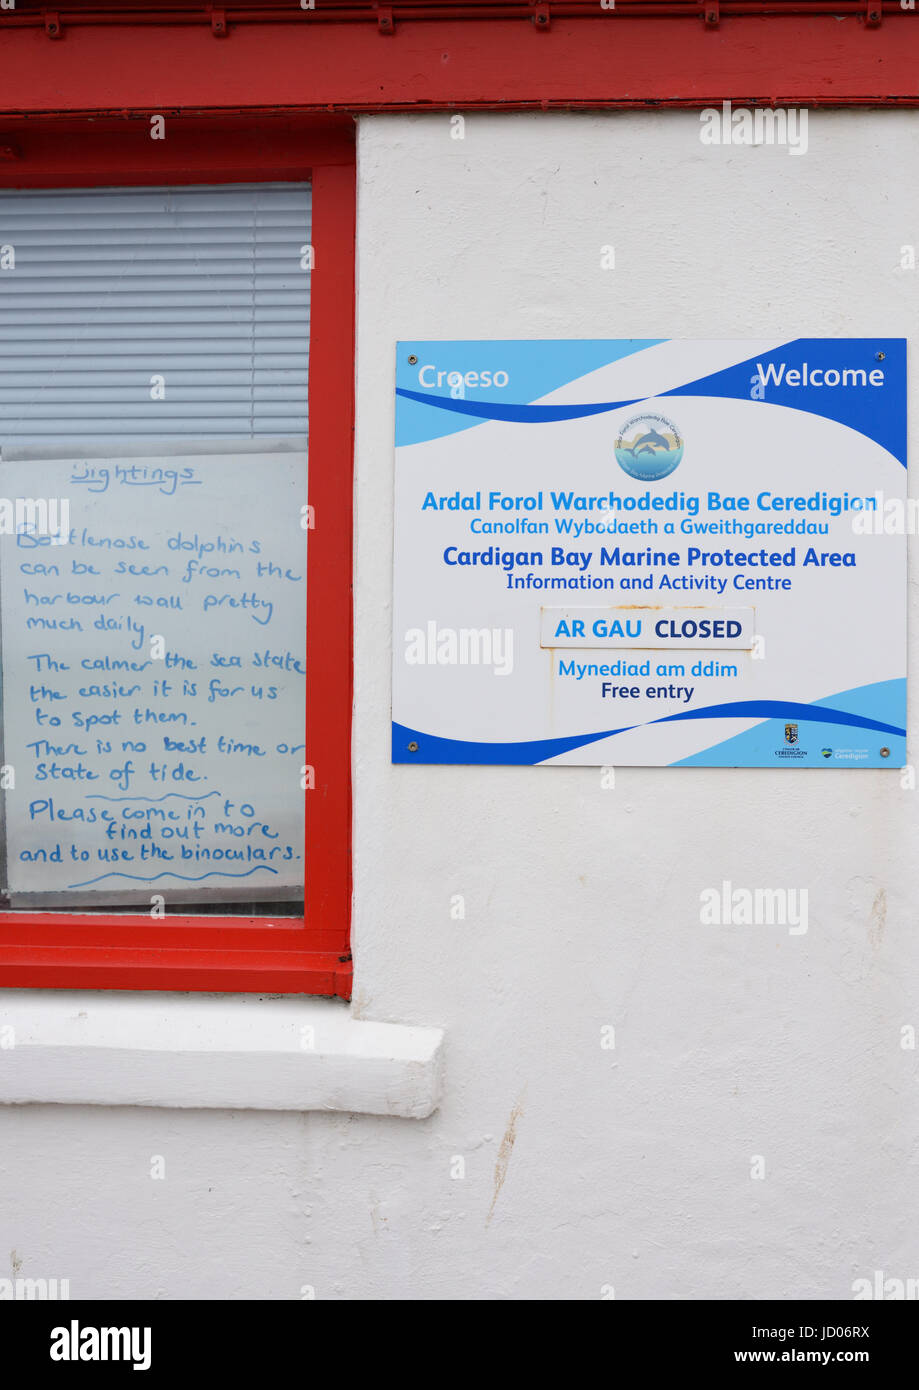 Cardigan bay marine protected area notice on wall new quay wales - Stock Image